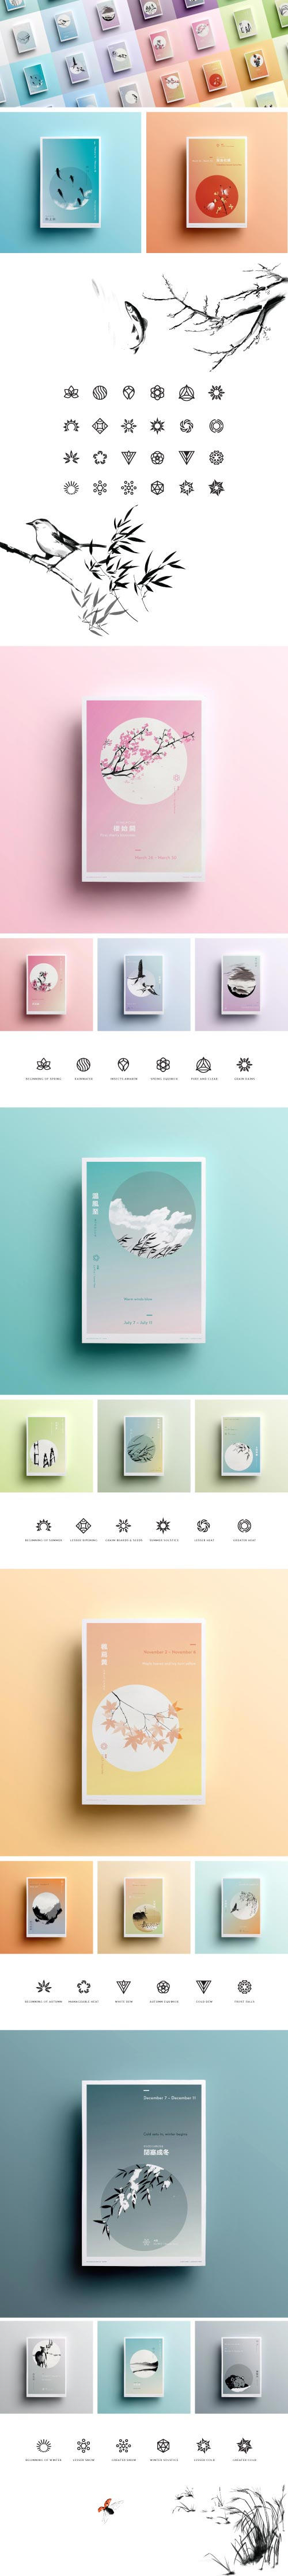 Microseasons of Japan poster series, illustrated and designed by Sydney designer, Lisa Furze